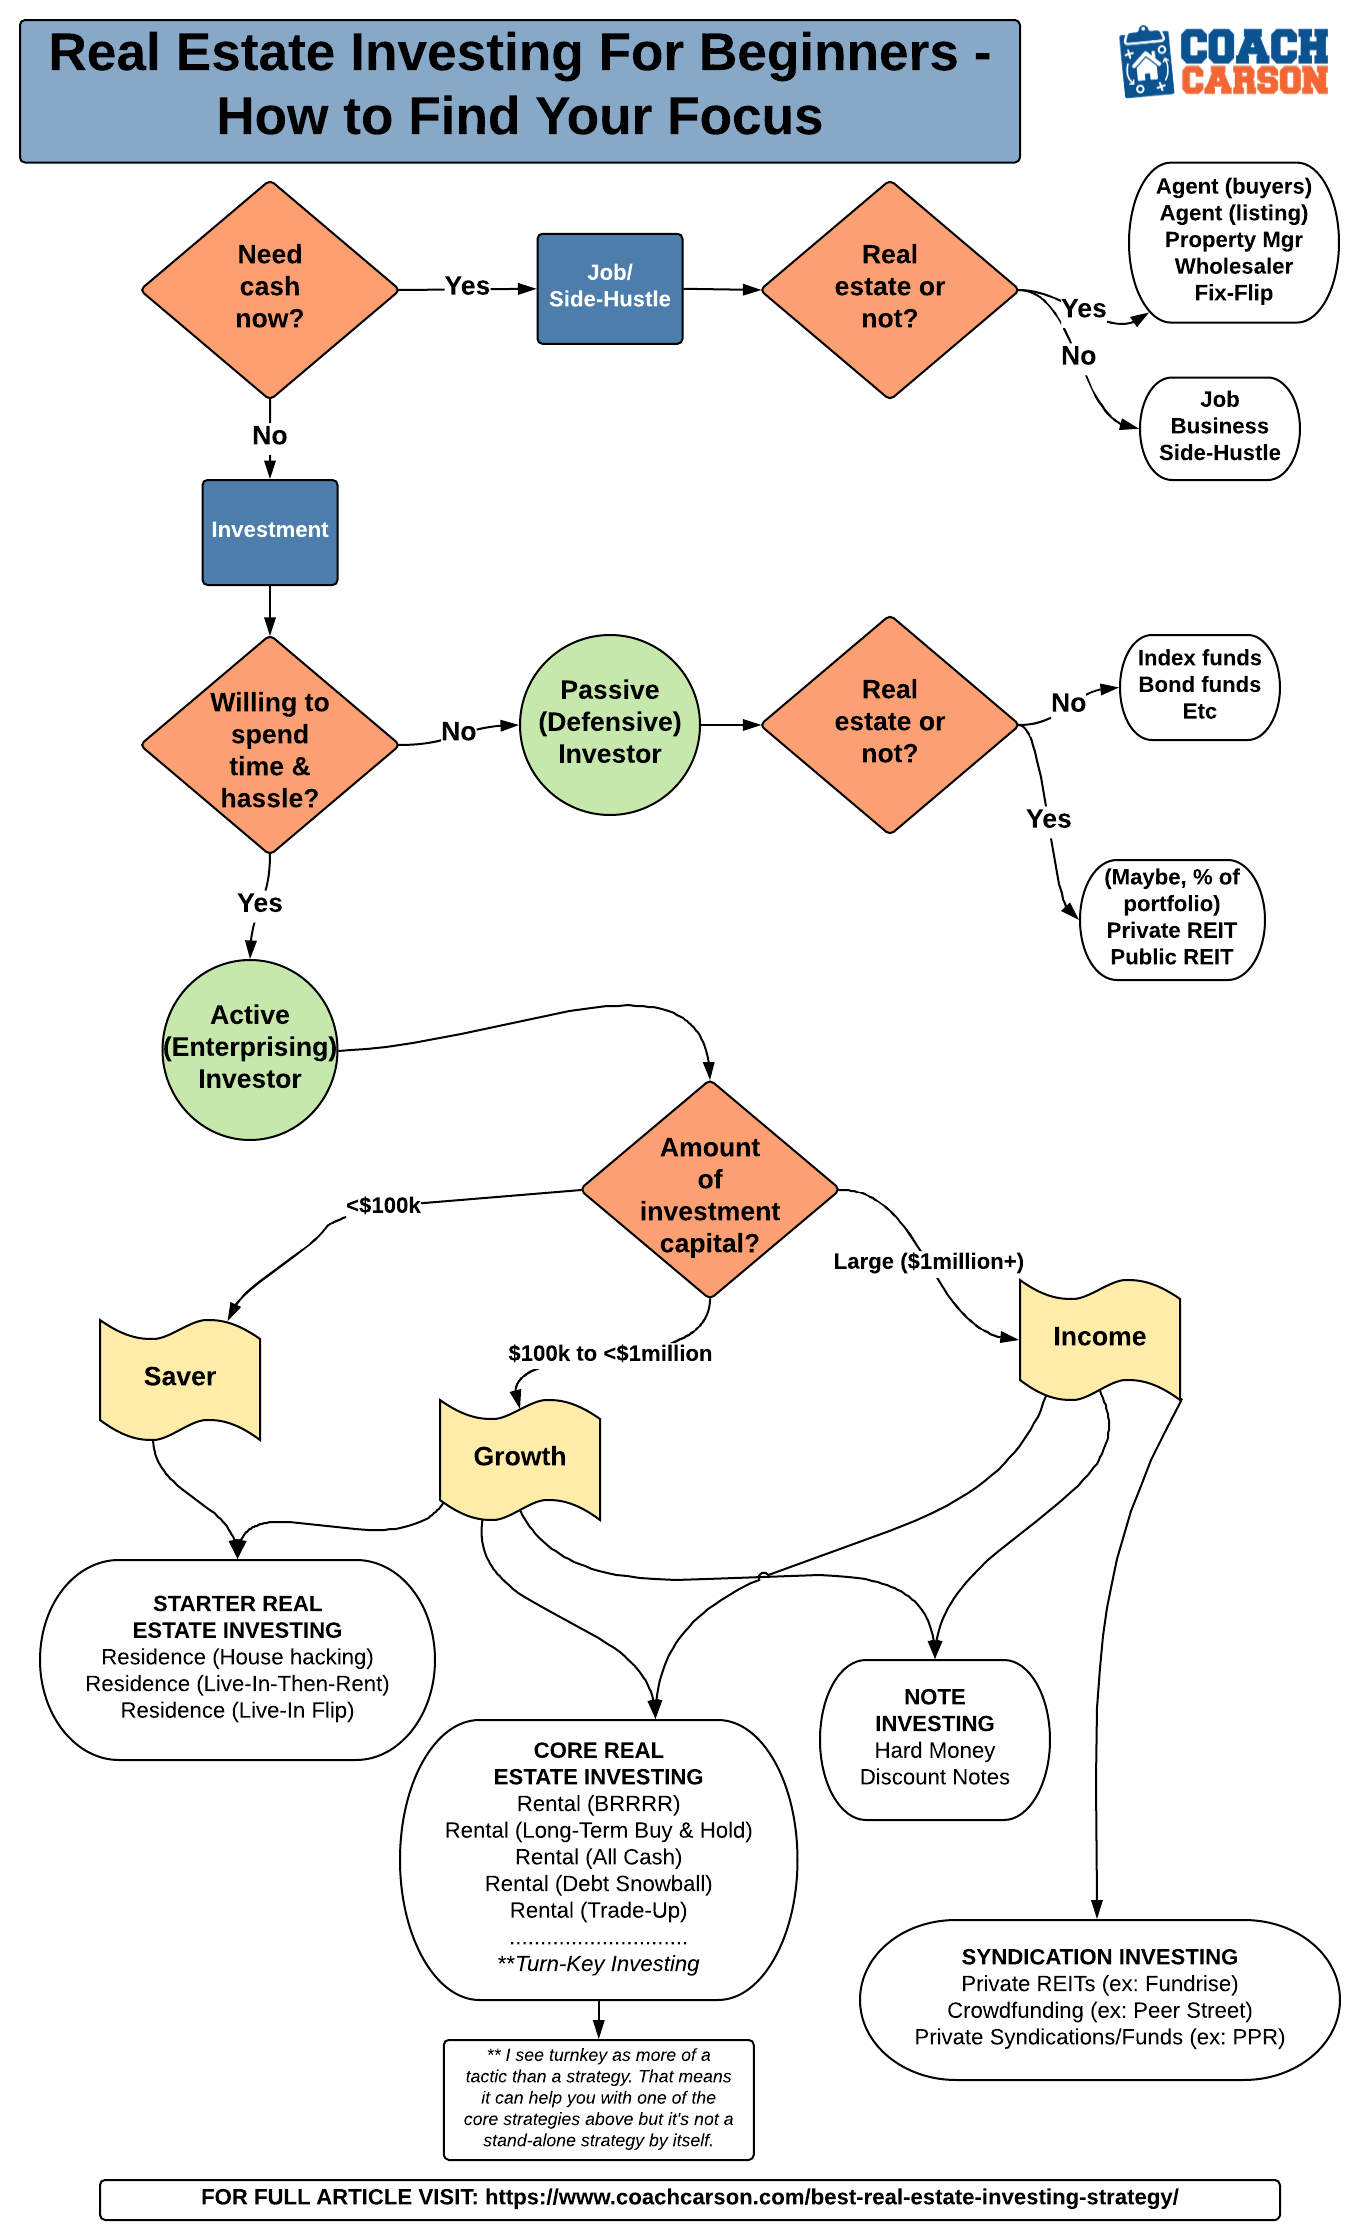 flow chart - Real Estate Investing For Beginners - How to Find Your Focus